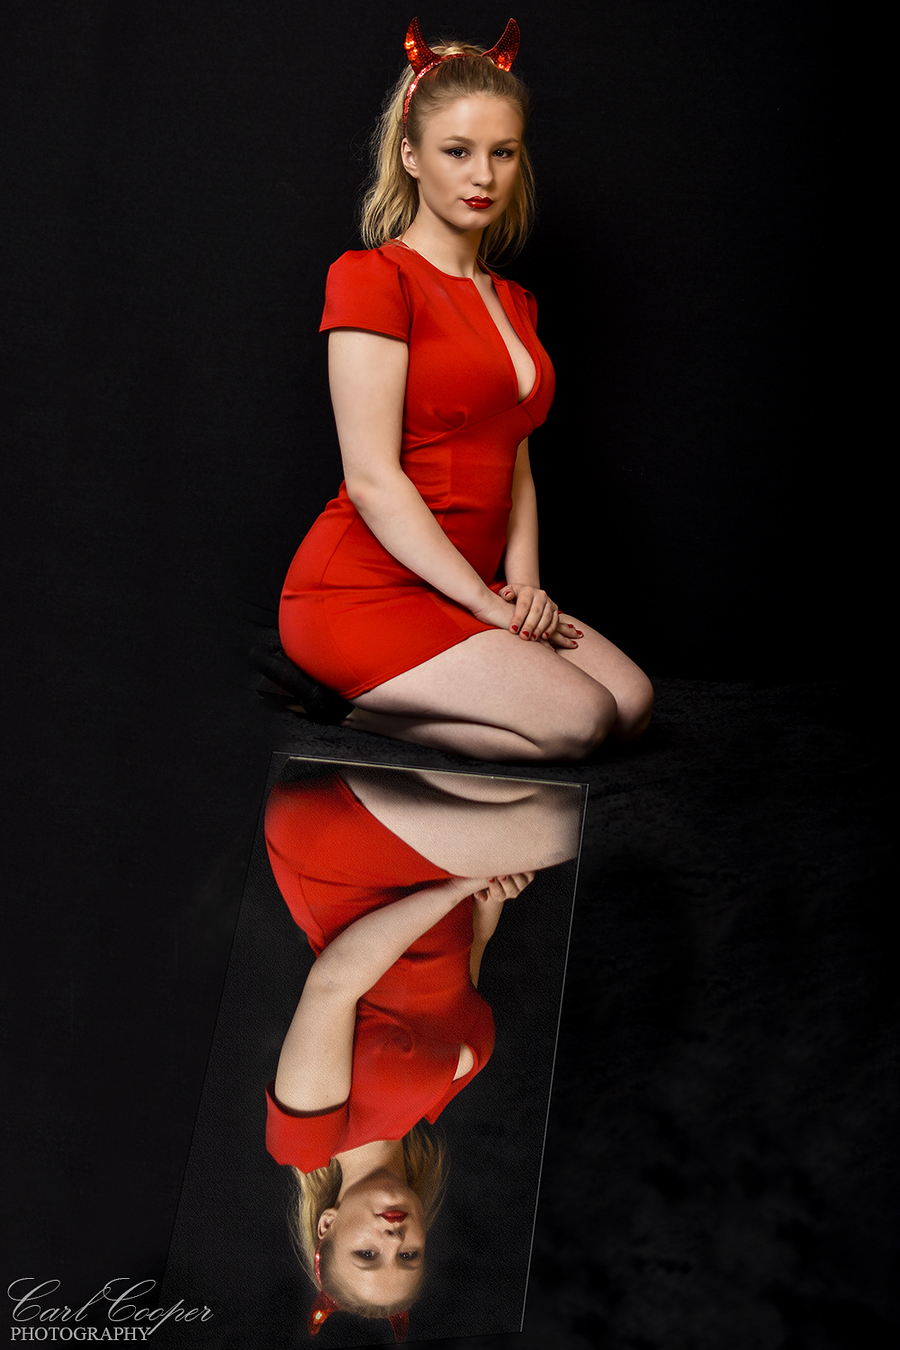 Reflected / Photography by CarlCooperPhotography, Model Dàngeroux Dèlilah, Taken at Hull Photography Studio / Uploaded 26th May 2018 @ 02:30 PM